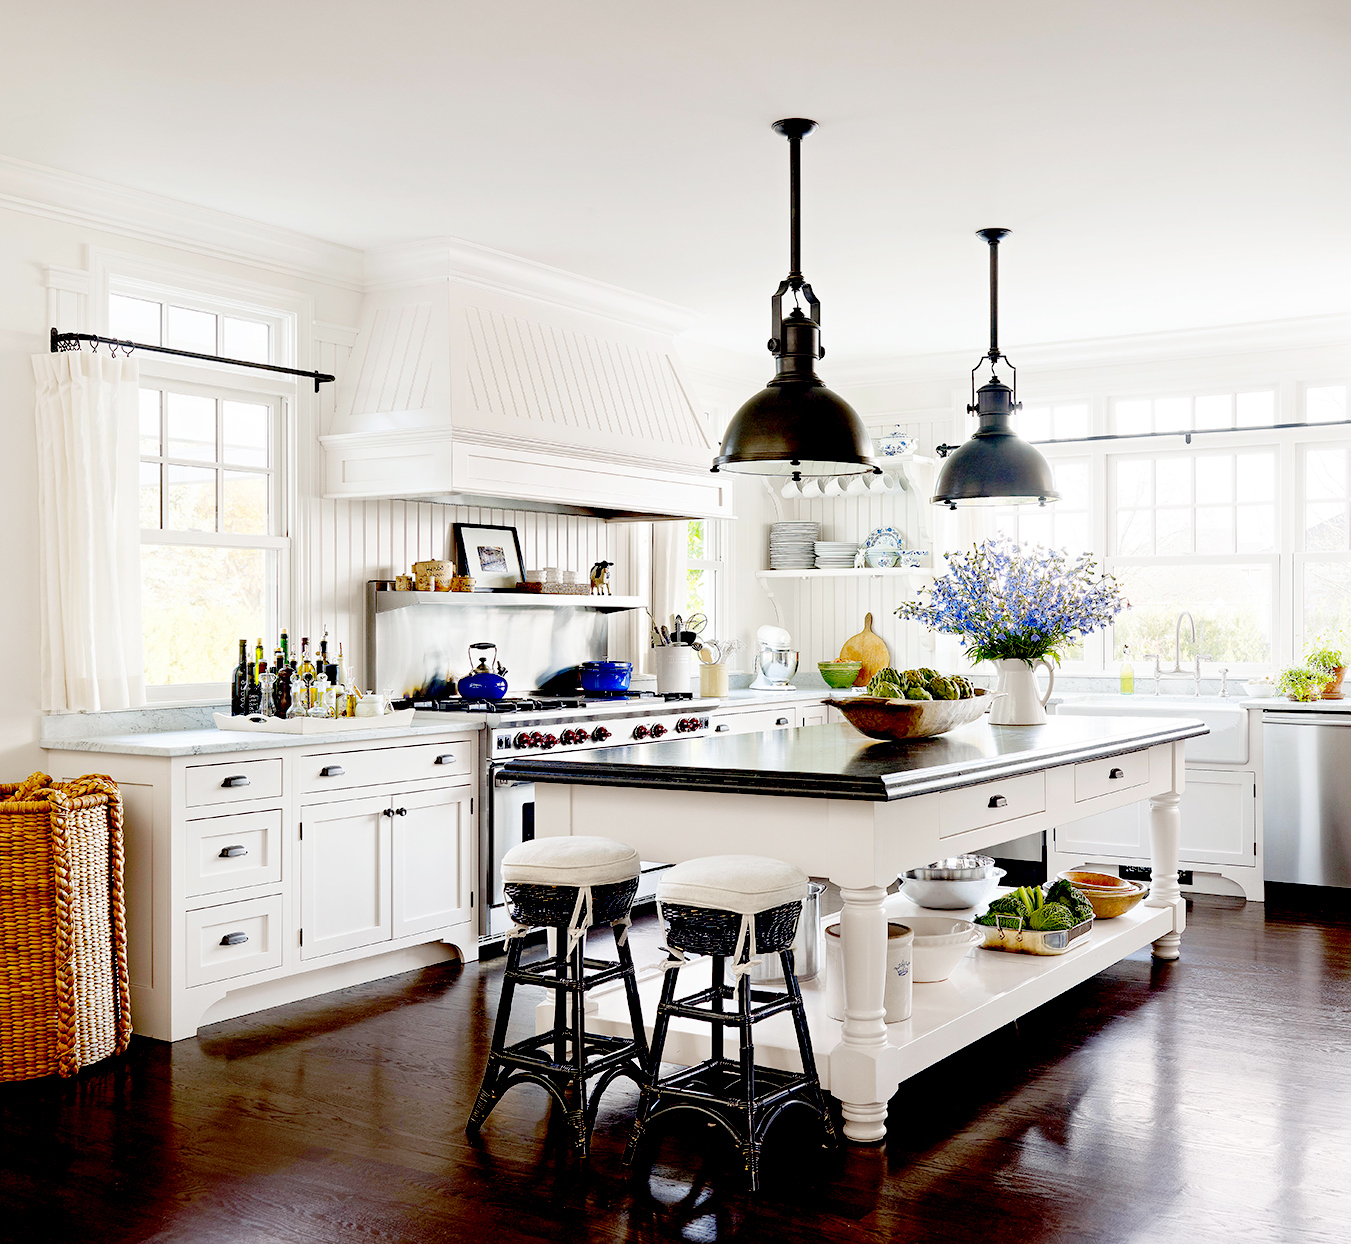 White kitchen with island and wooden tops